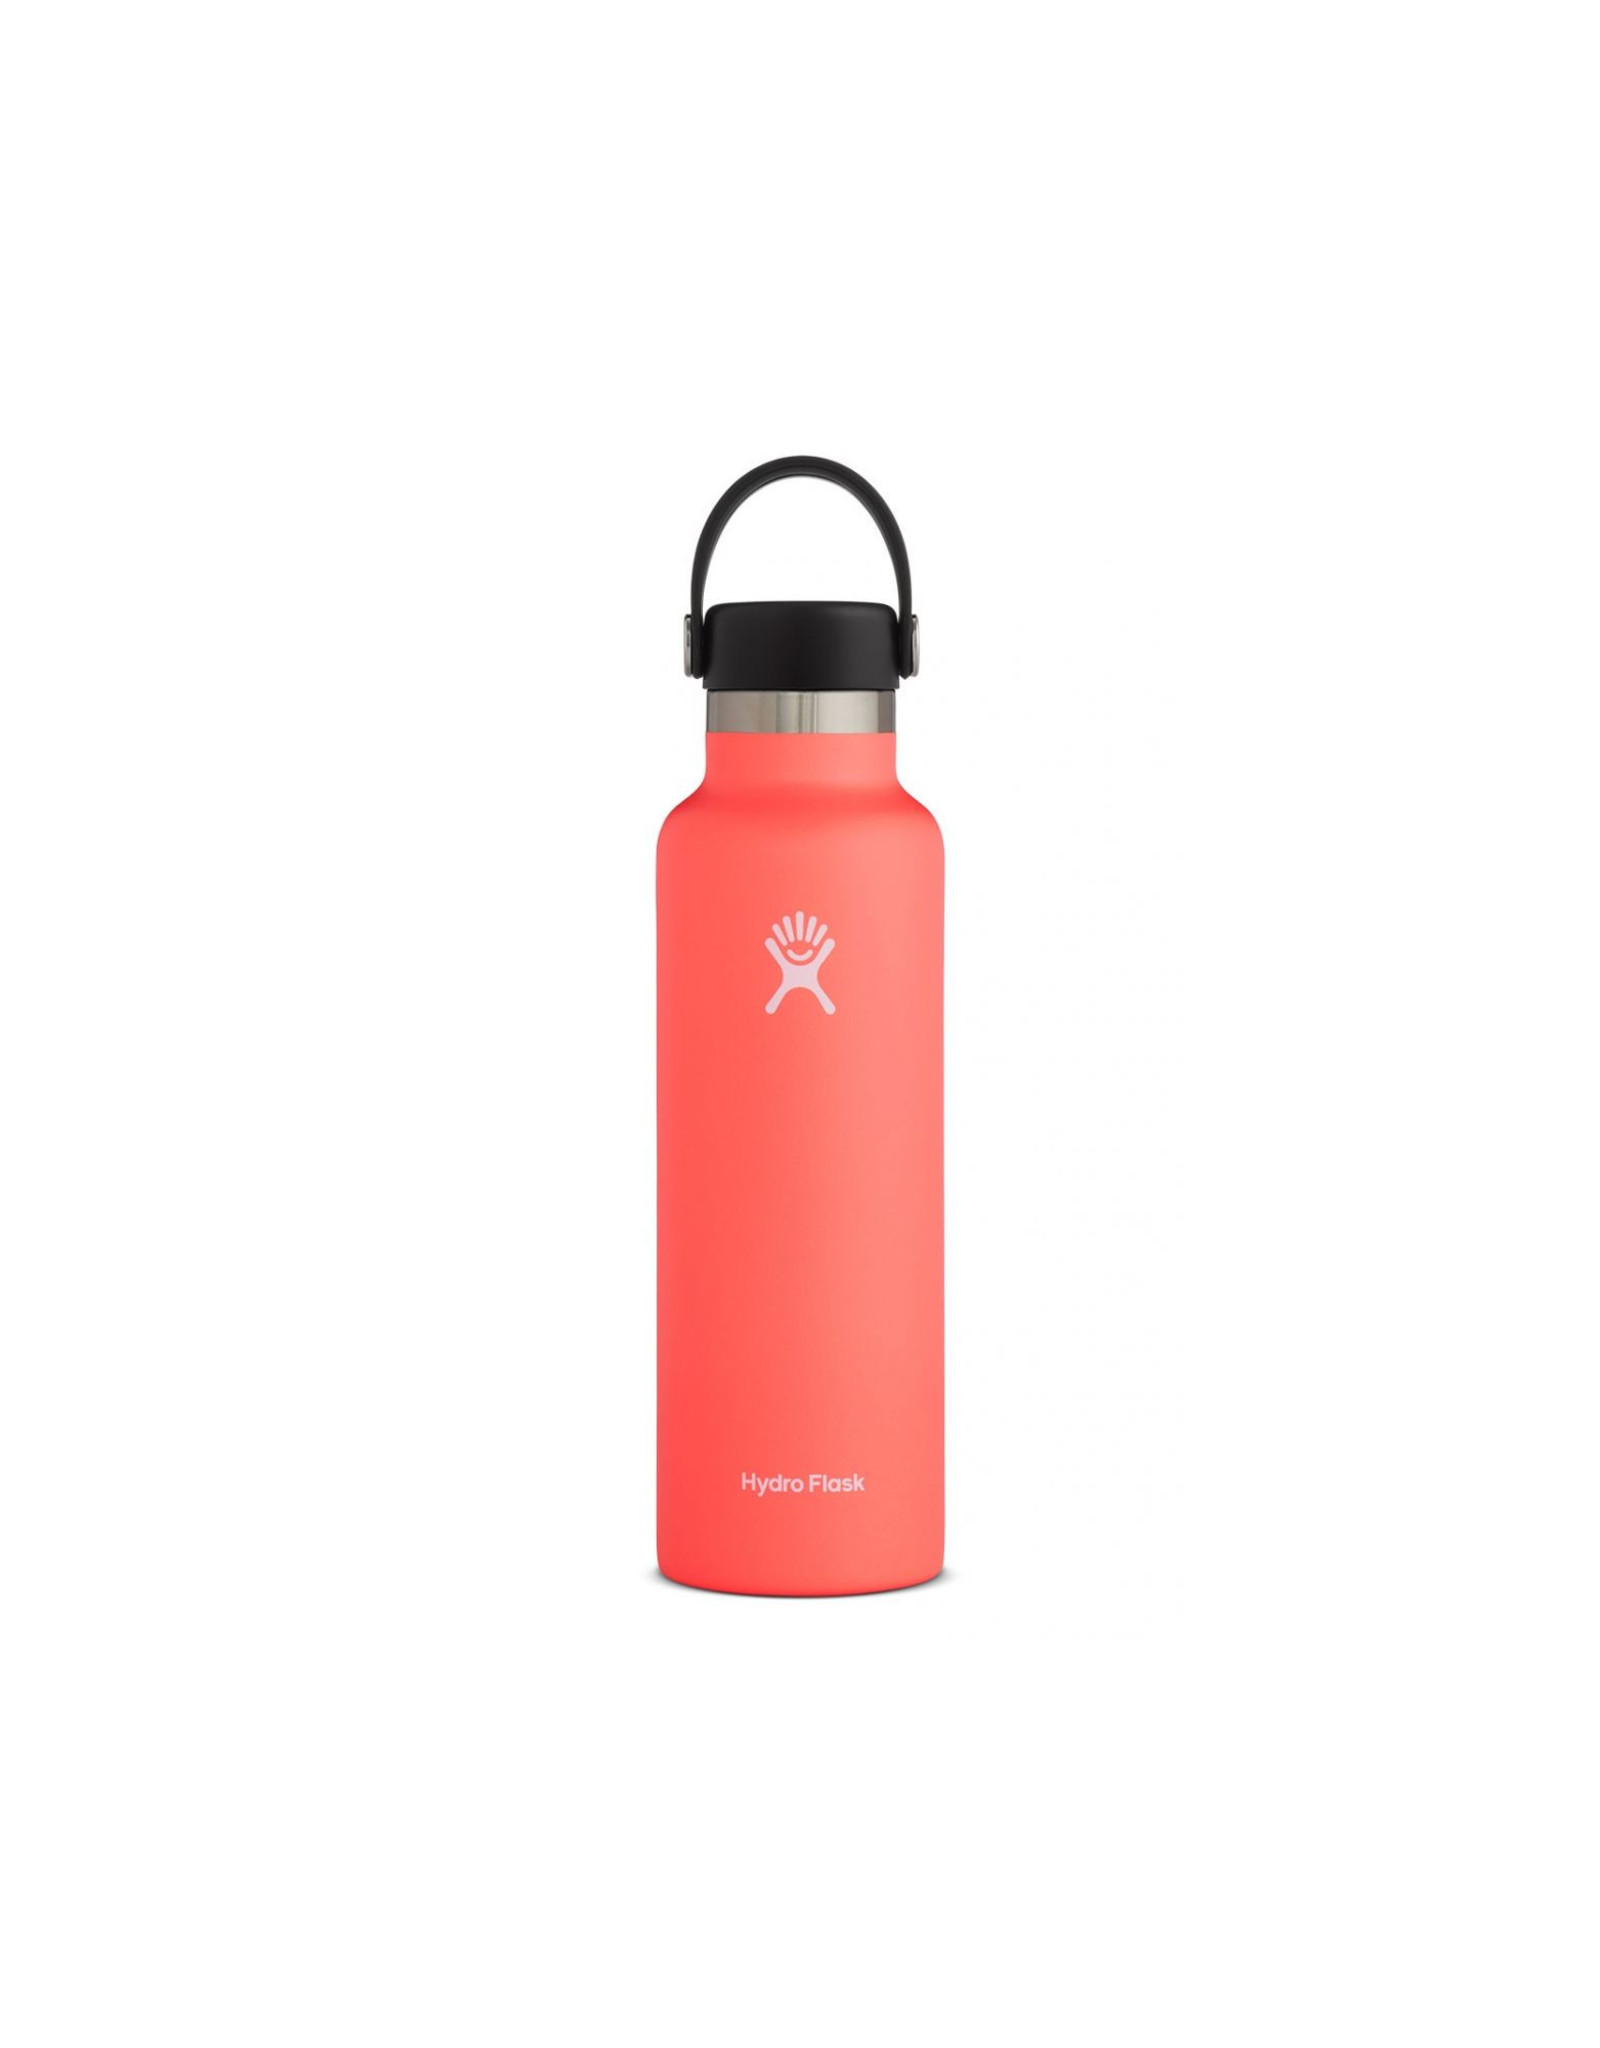 Hydro flask Bouteille 21OZ Hydro Flask